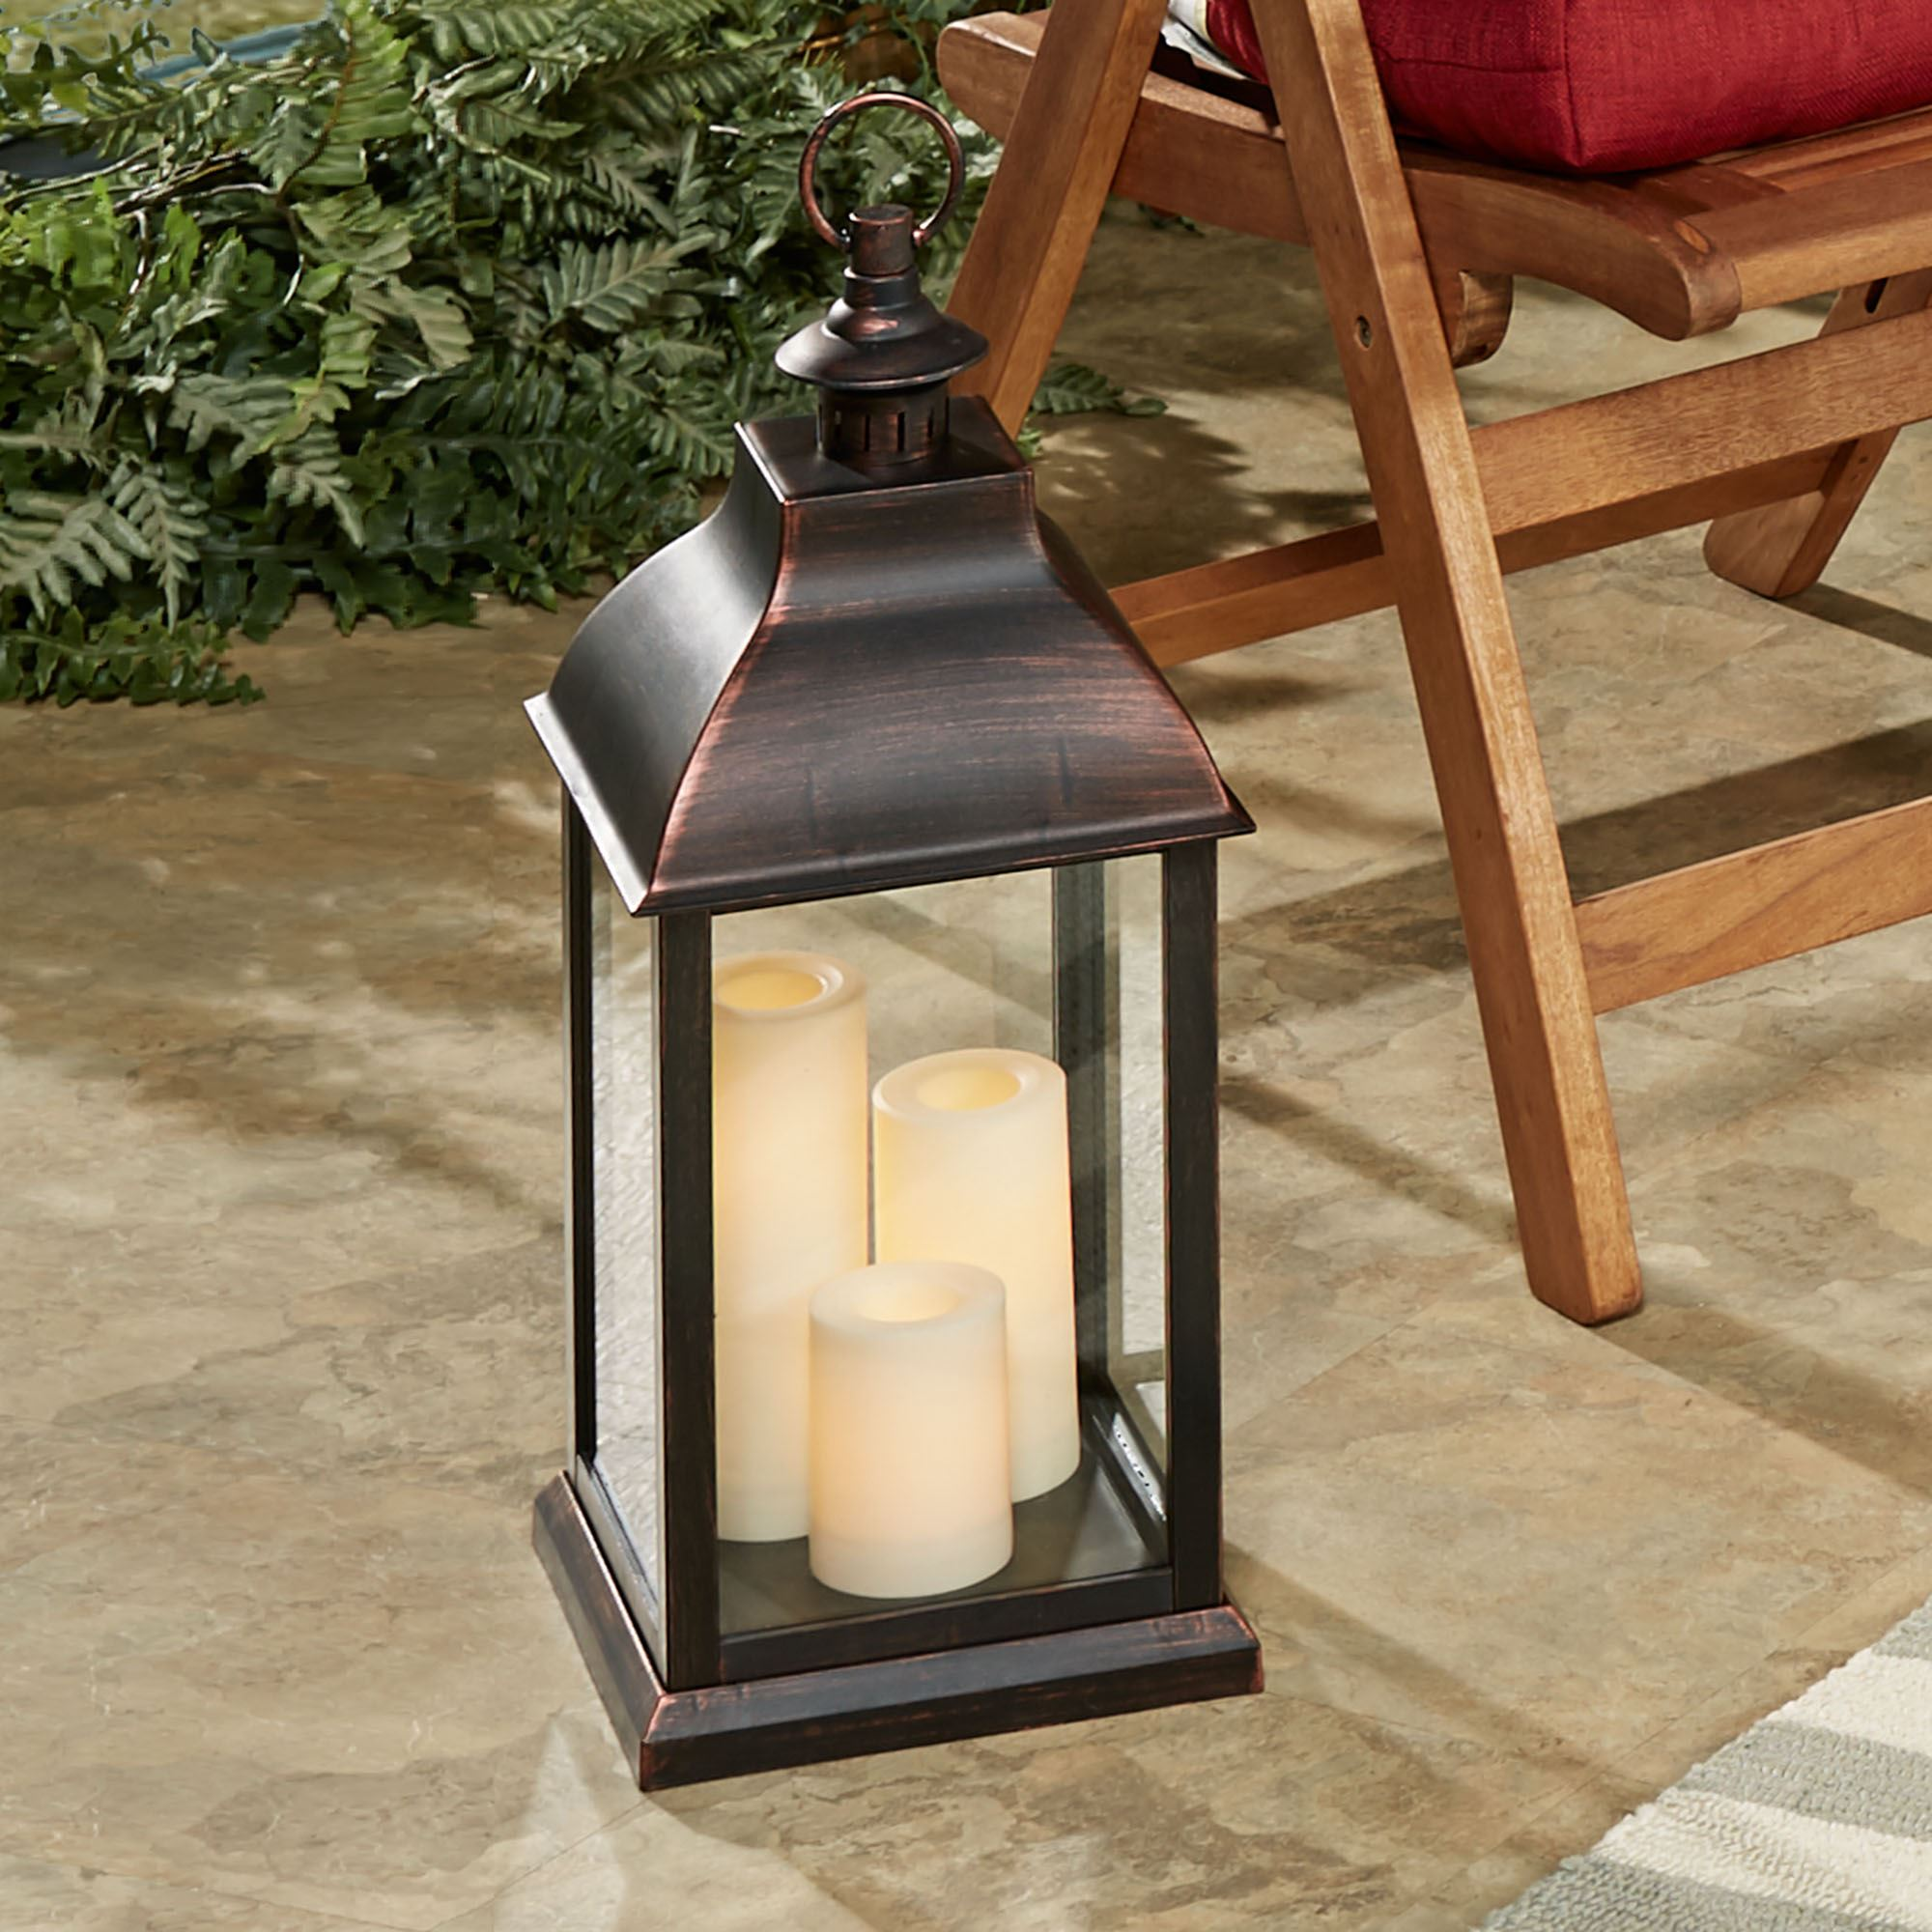 Beacon Hill Large Indoor Outdoor Lantern With Flameless